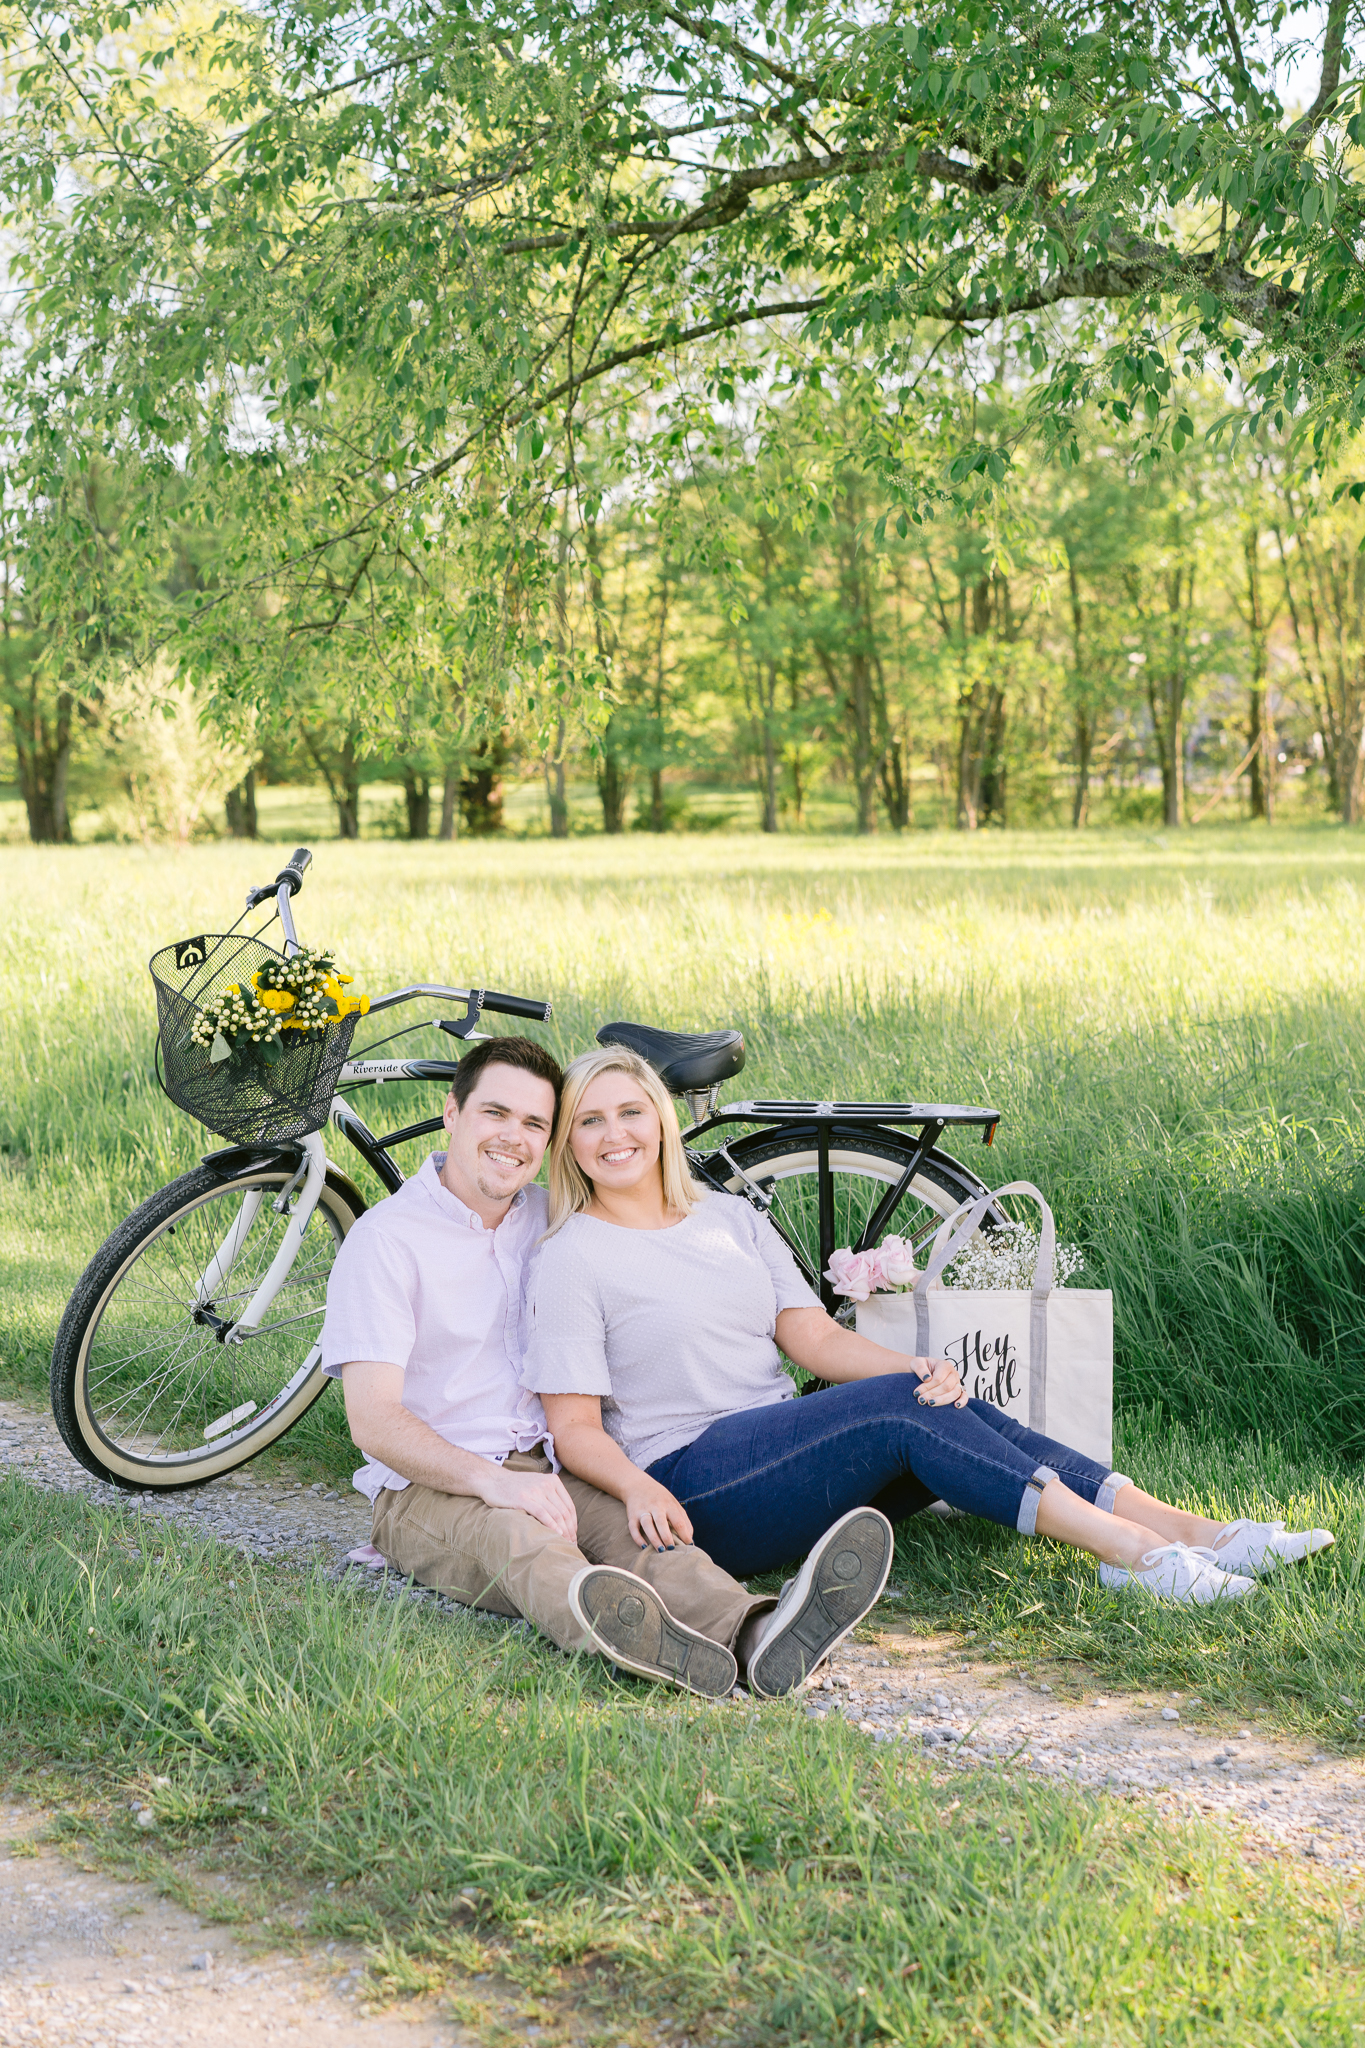 Cute bicycle countryside vibes with couple